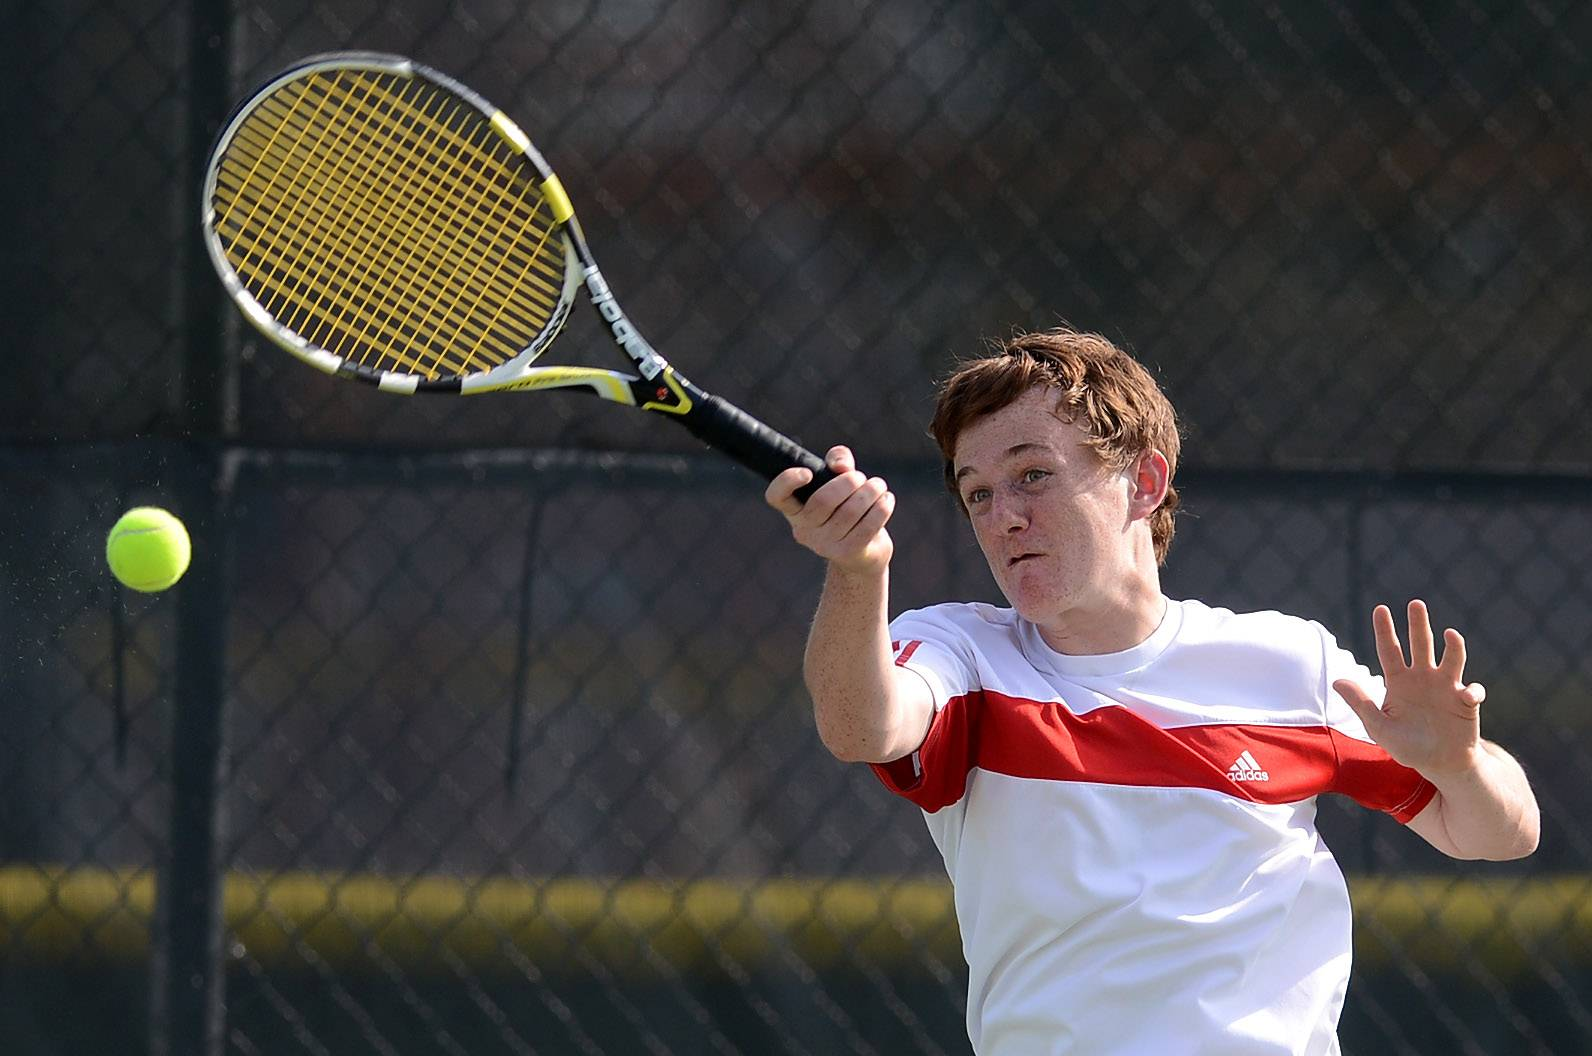 Adam Maris of Batavia returns serve in the #1 doubles match against St. Charles North during tennis action at Batavia Thursday.